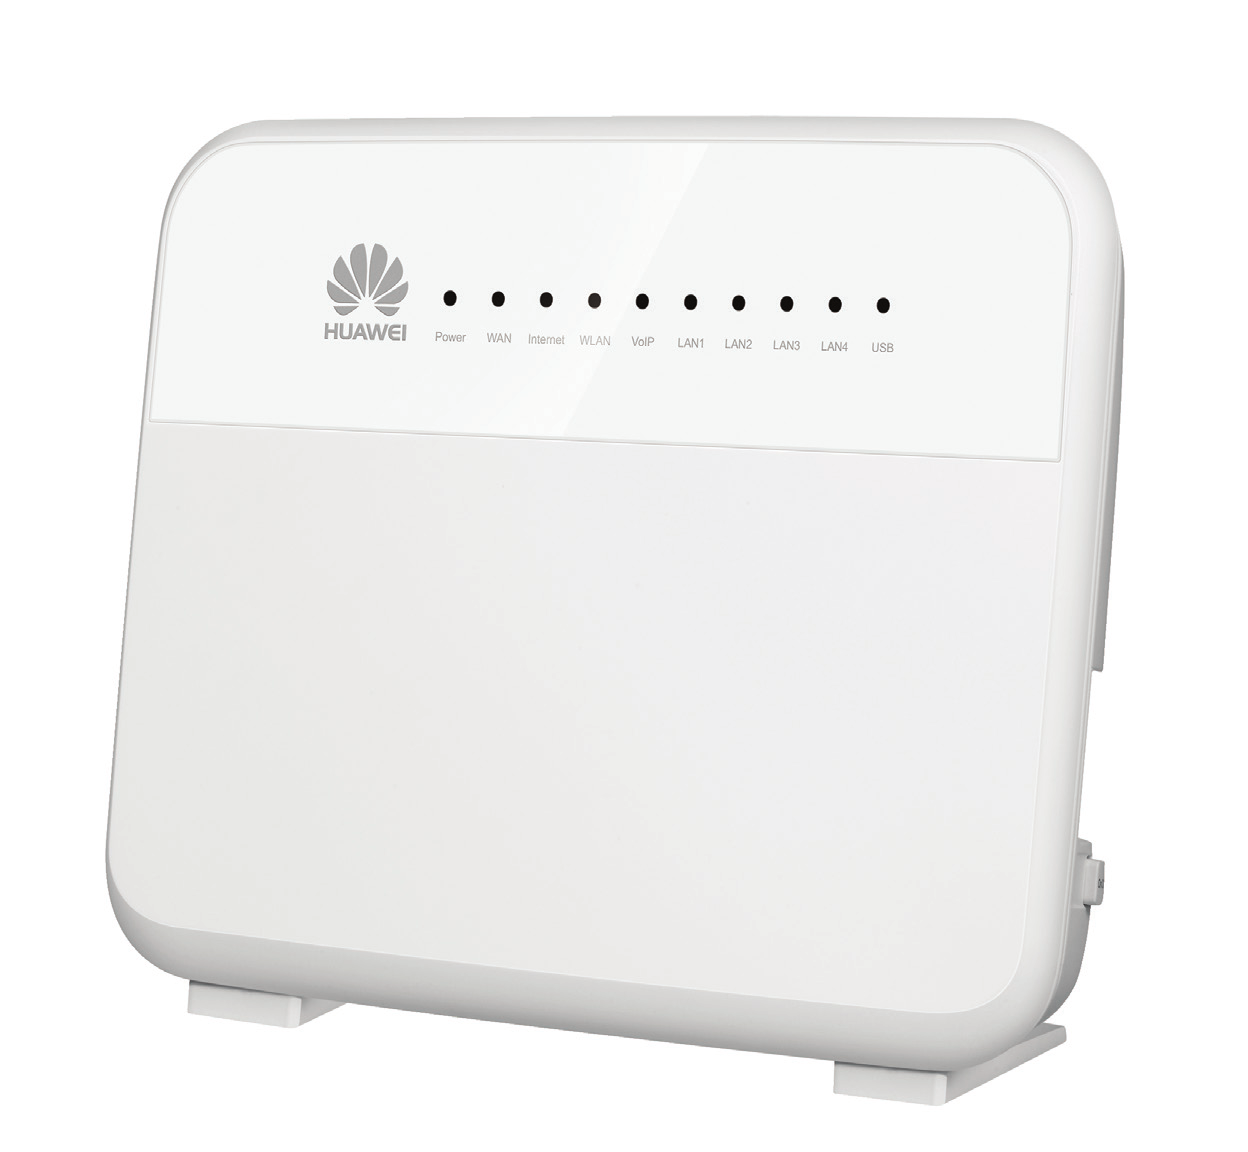 How do I set up my Skinny Unlimited HG659 modem?